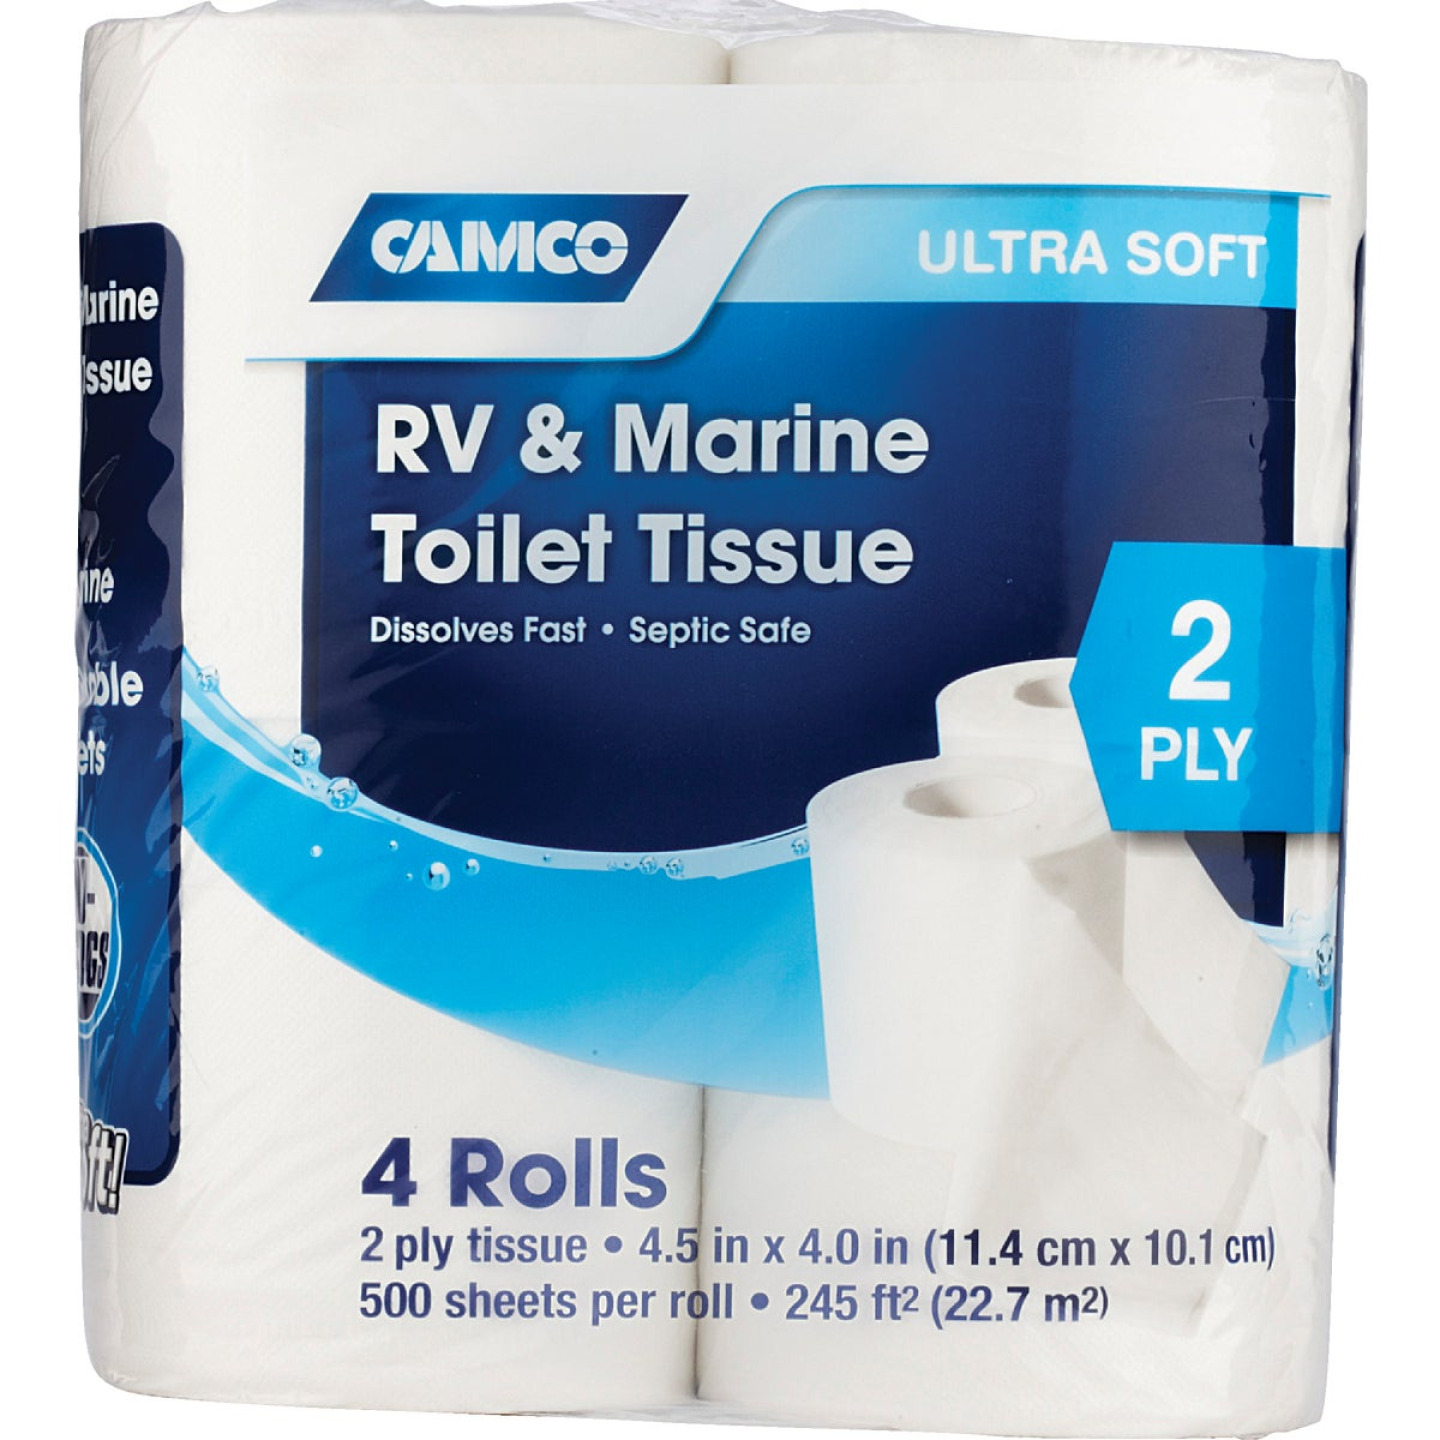 Camco RV & Marine 2-Ply Toilet Paper (4 Regular Rolls) Image 2